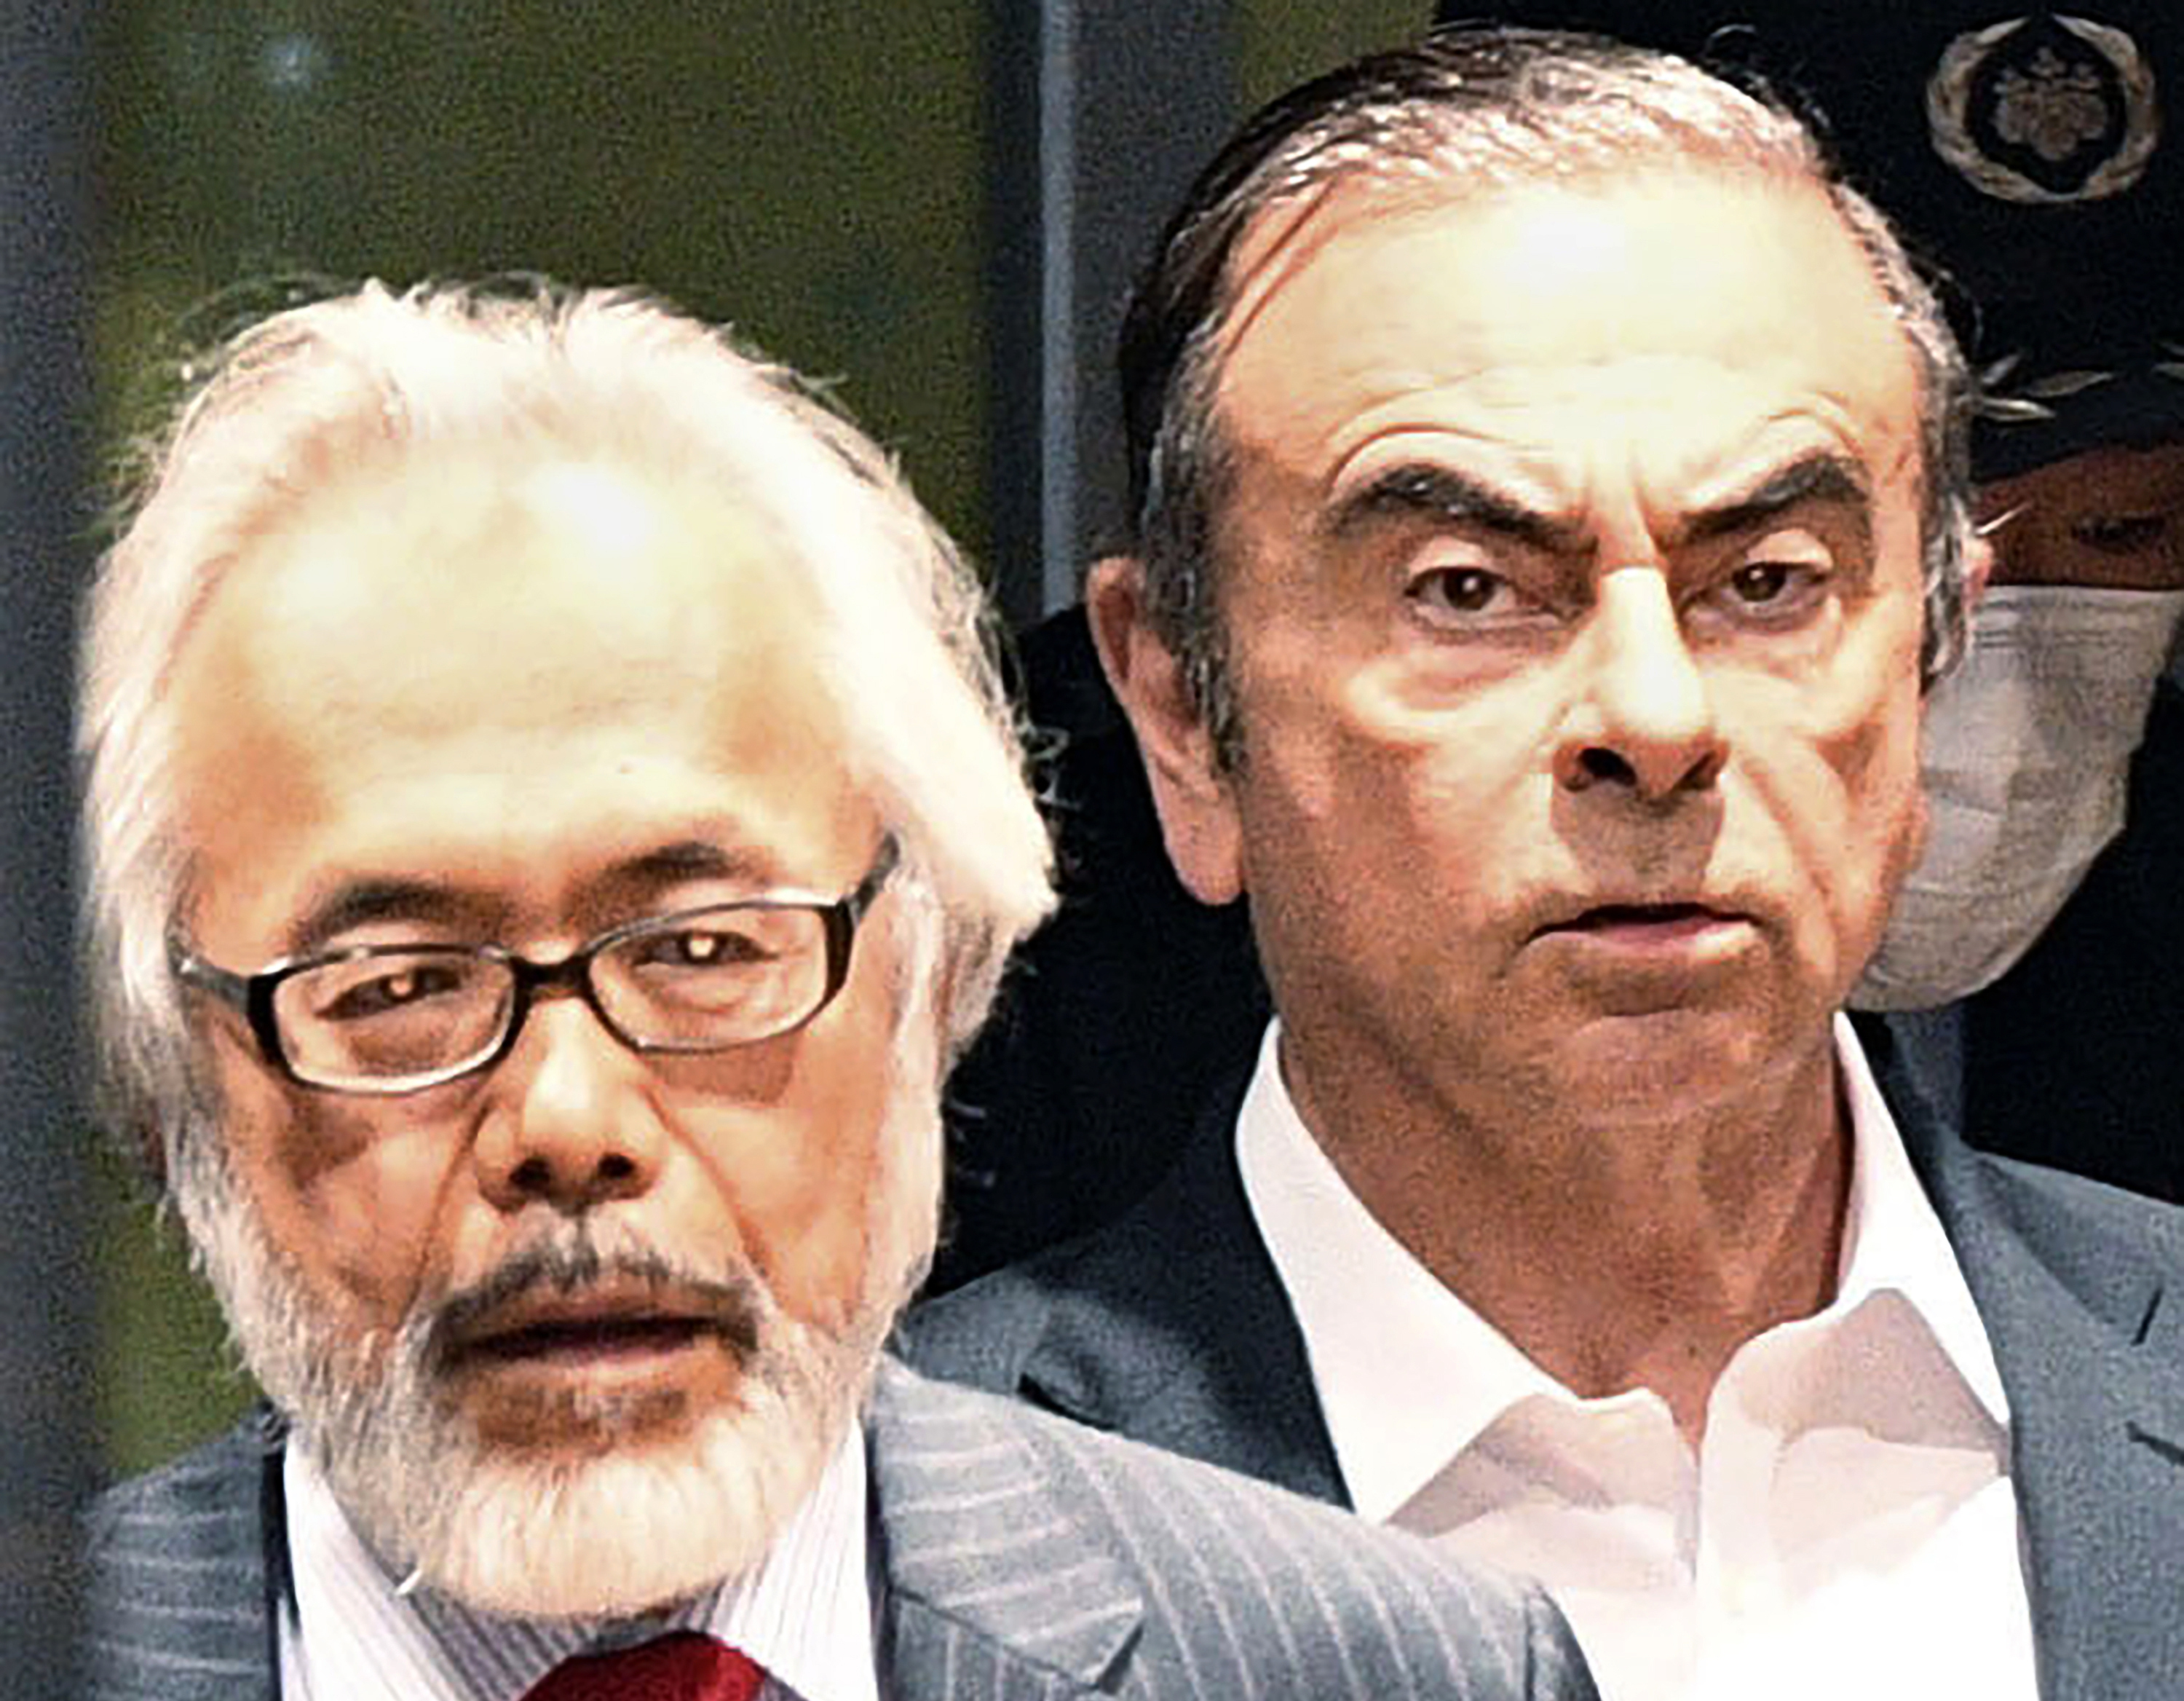 Ghosn lawyer outraged by Japans justice system and escape